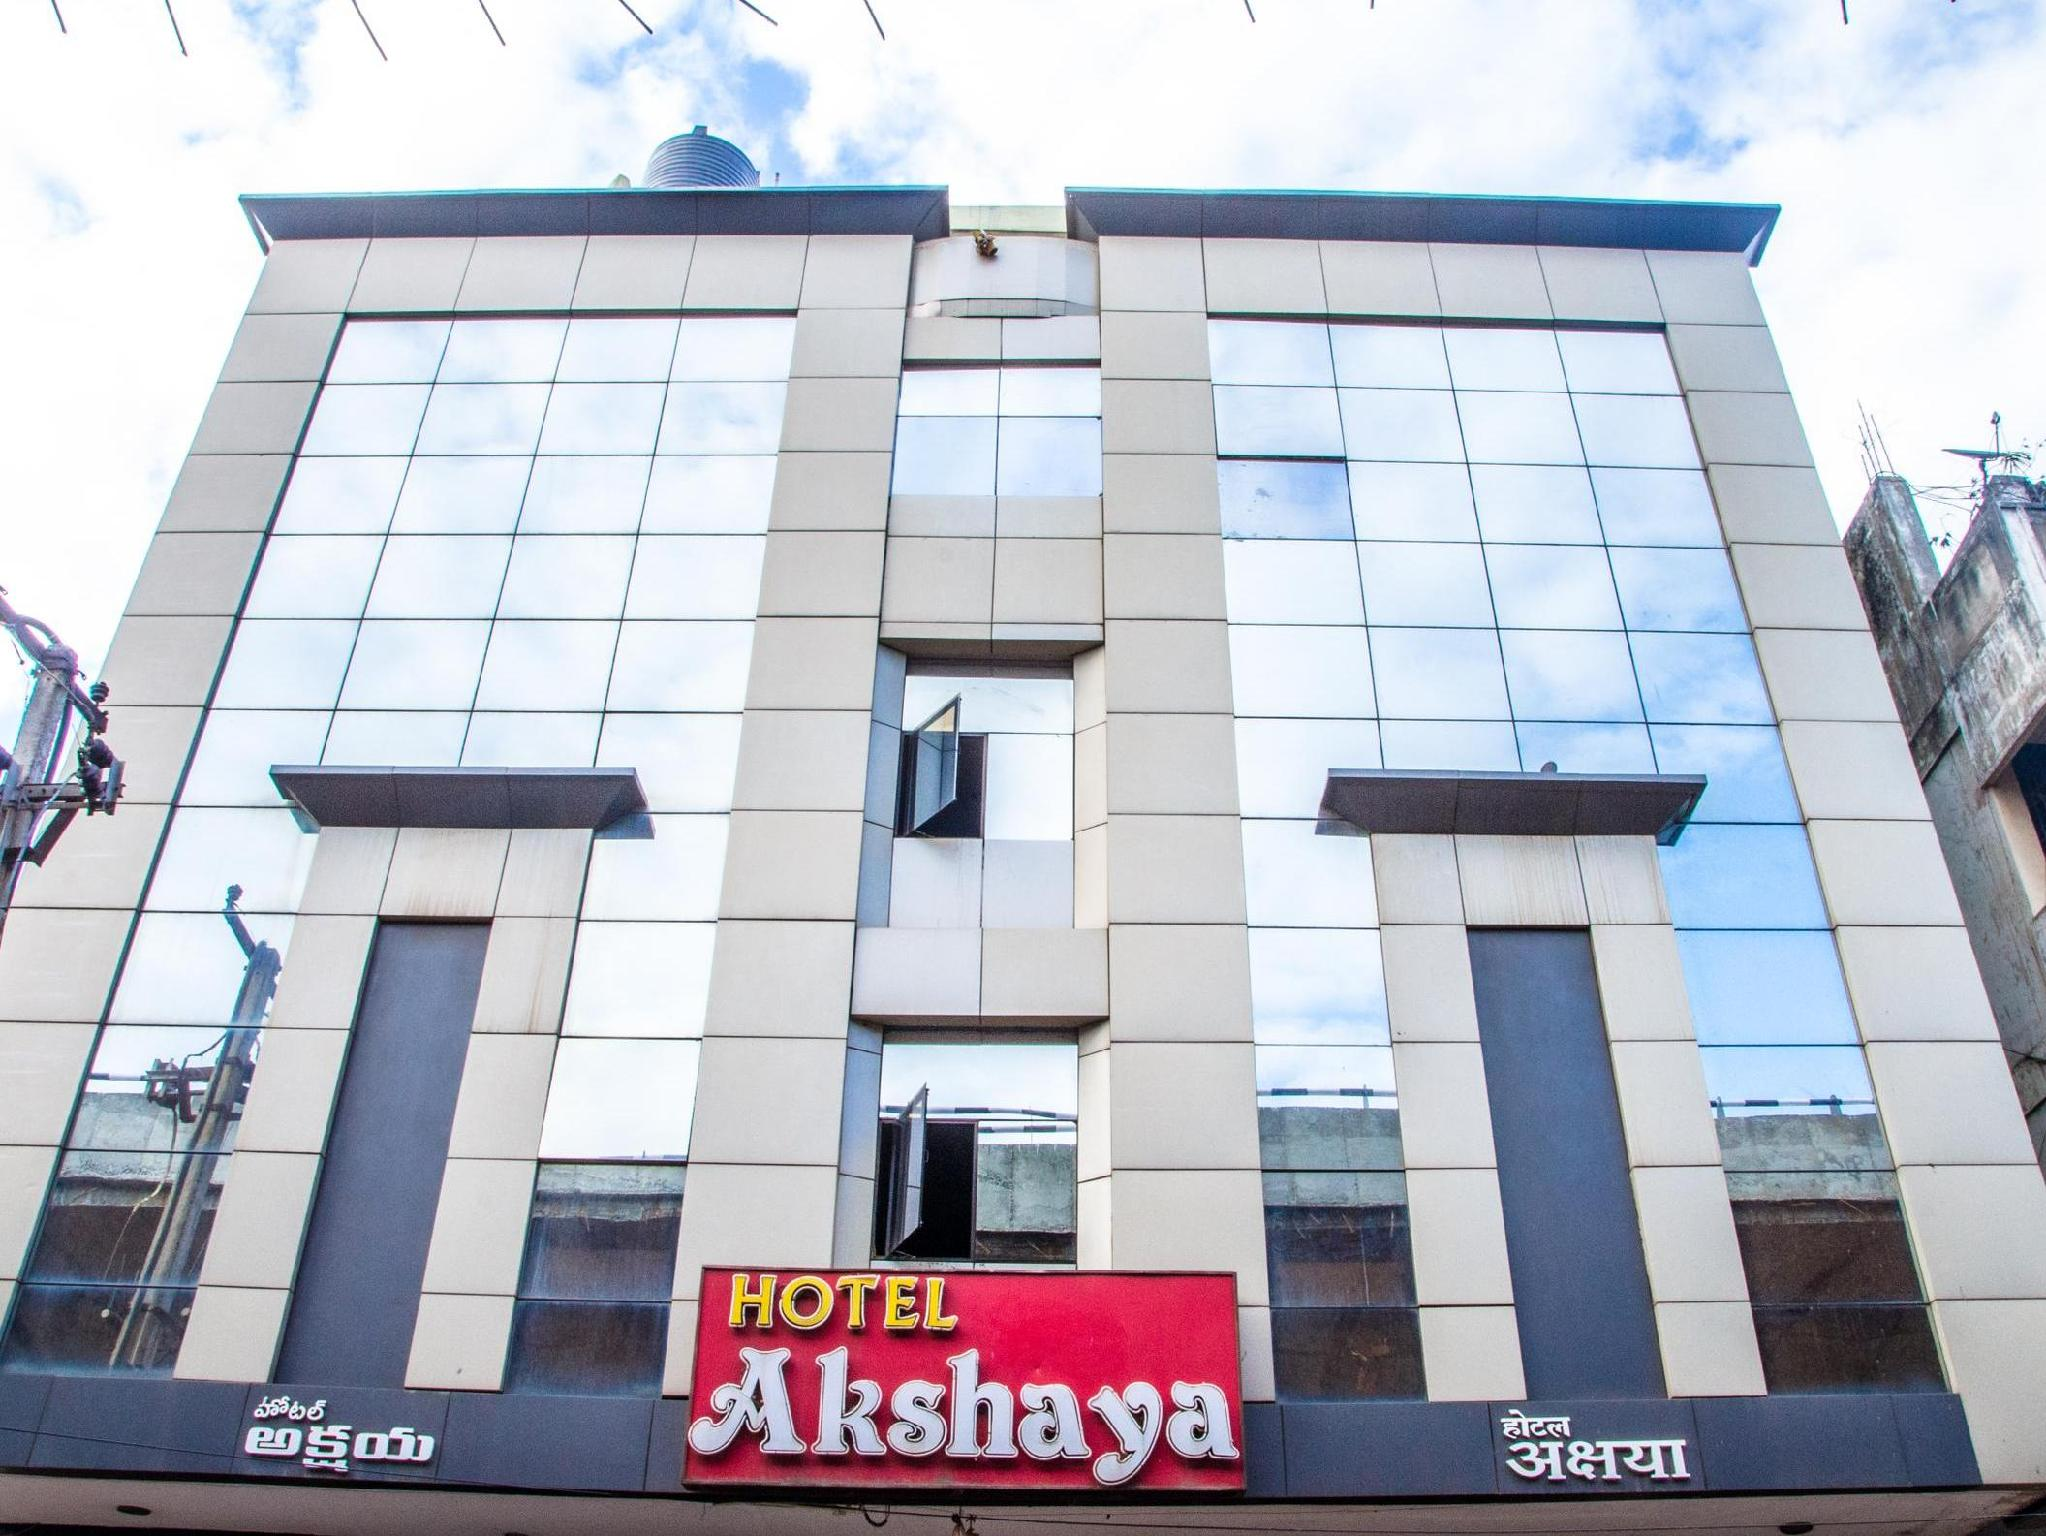 Hotel Akshaya - Hotel and accommodation in India in Visakhapatnam